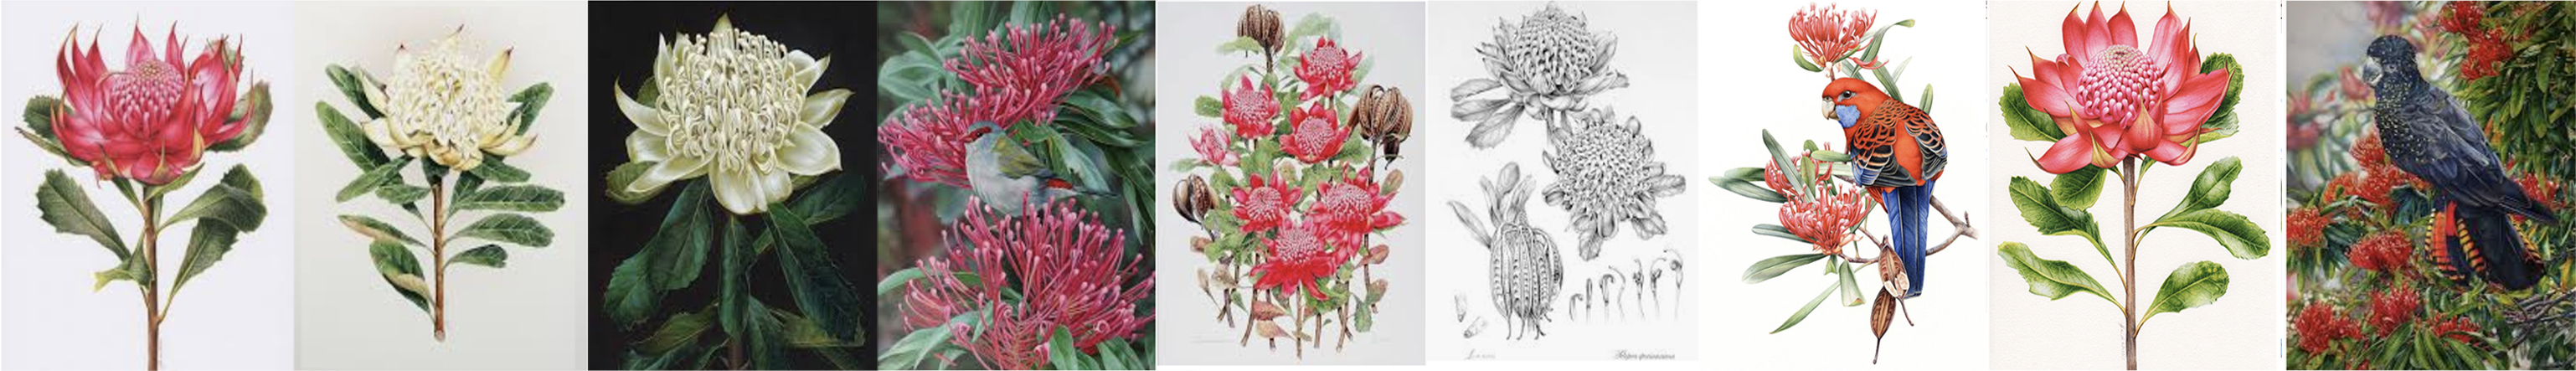 heidi willis_waratah painting_bird artist_botanical illustration